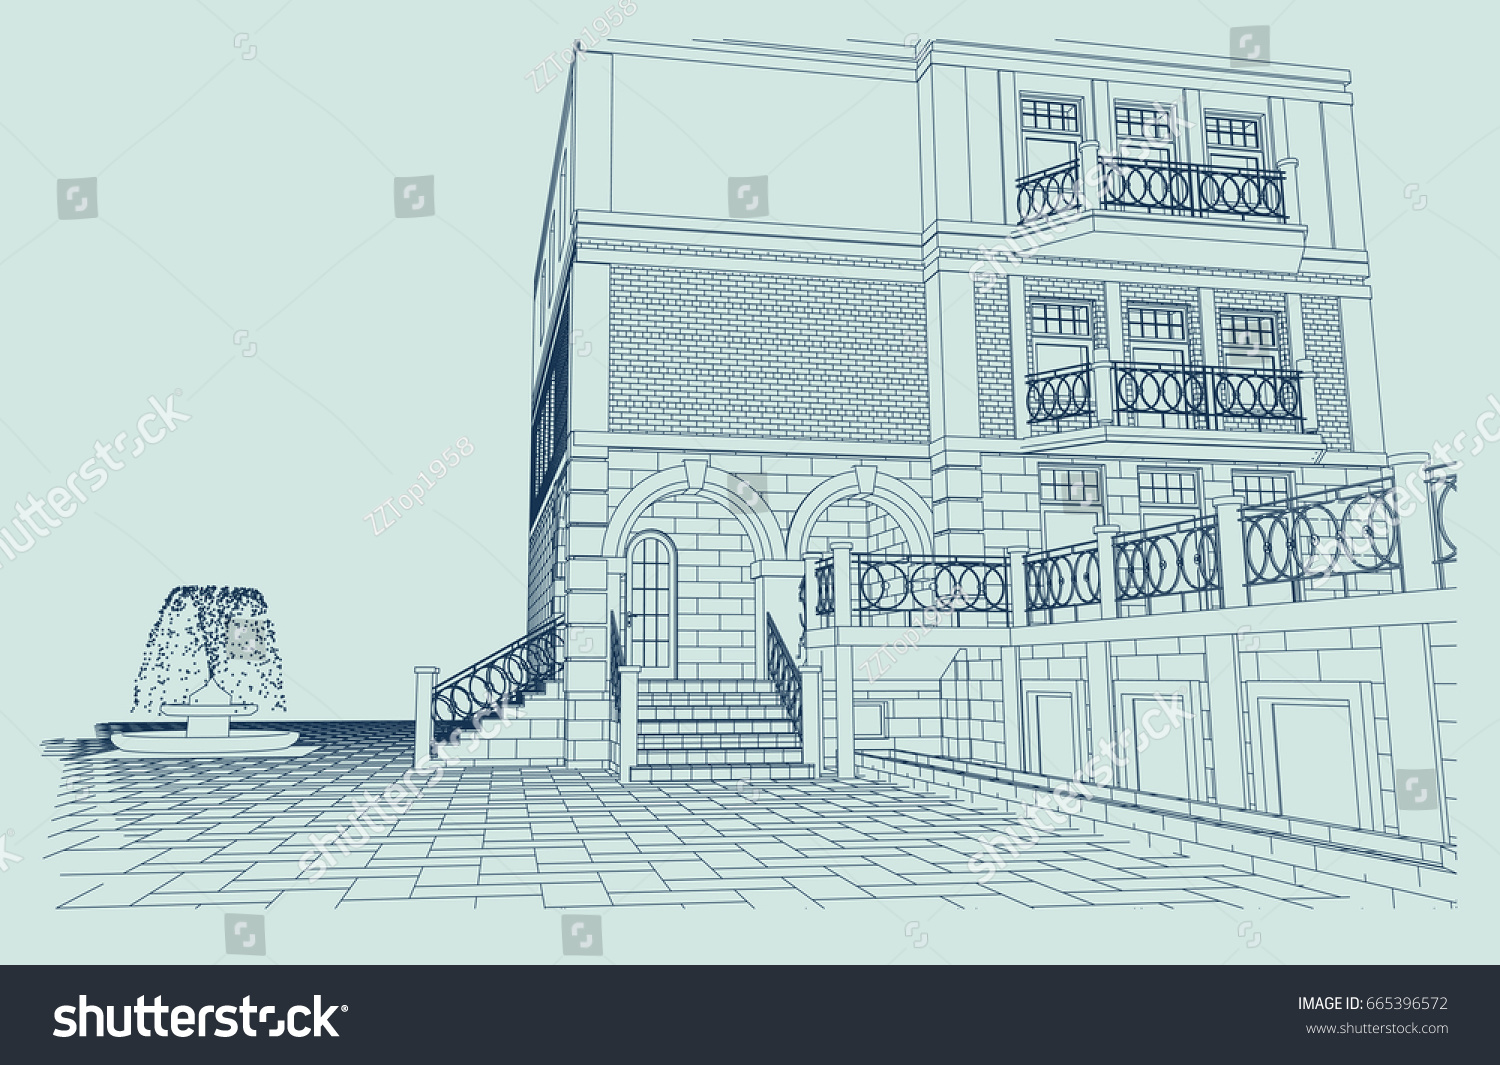 Authors project country house fountain blueprint stock photo photo the authors project of a country house with a fountain blueprint 3d perspective malvernweather Image collections